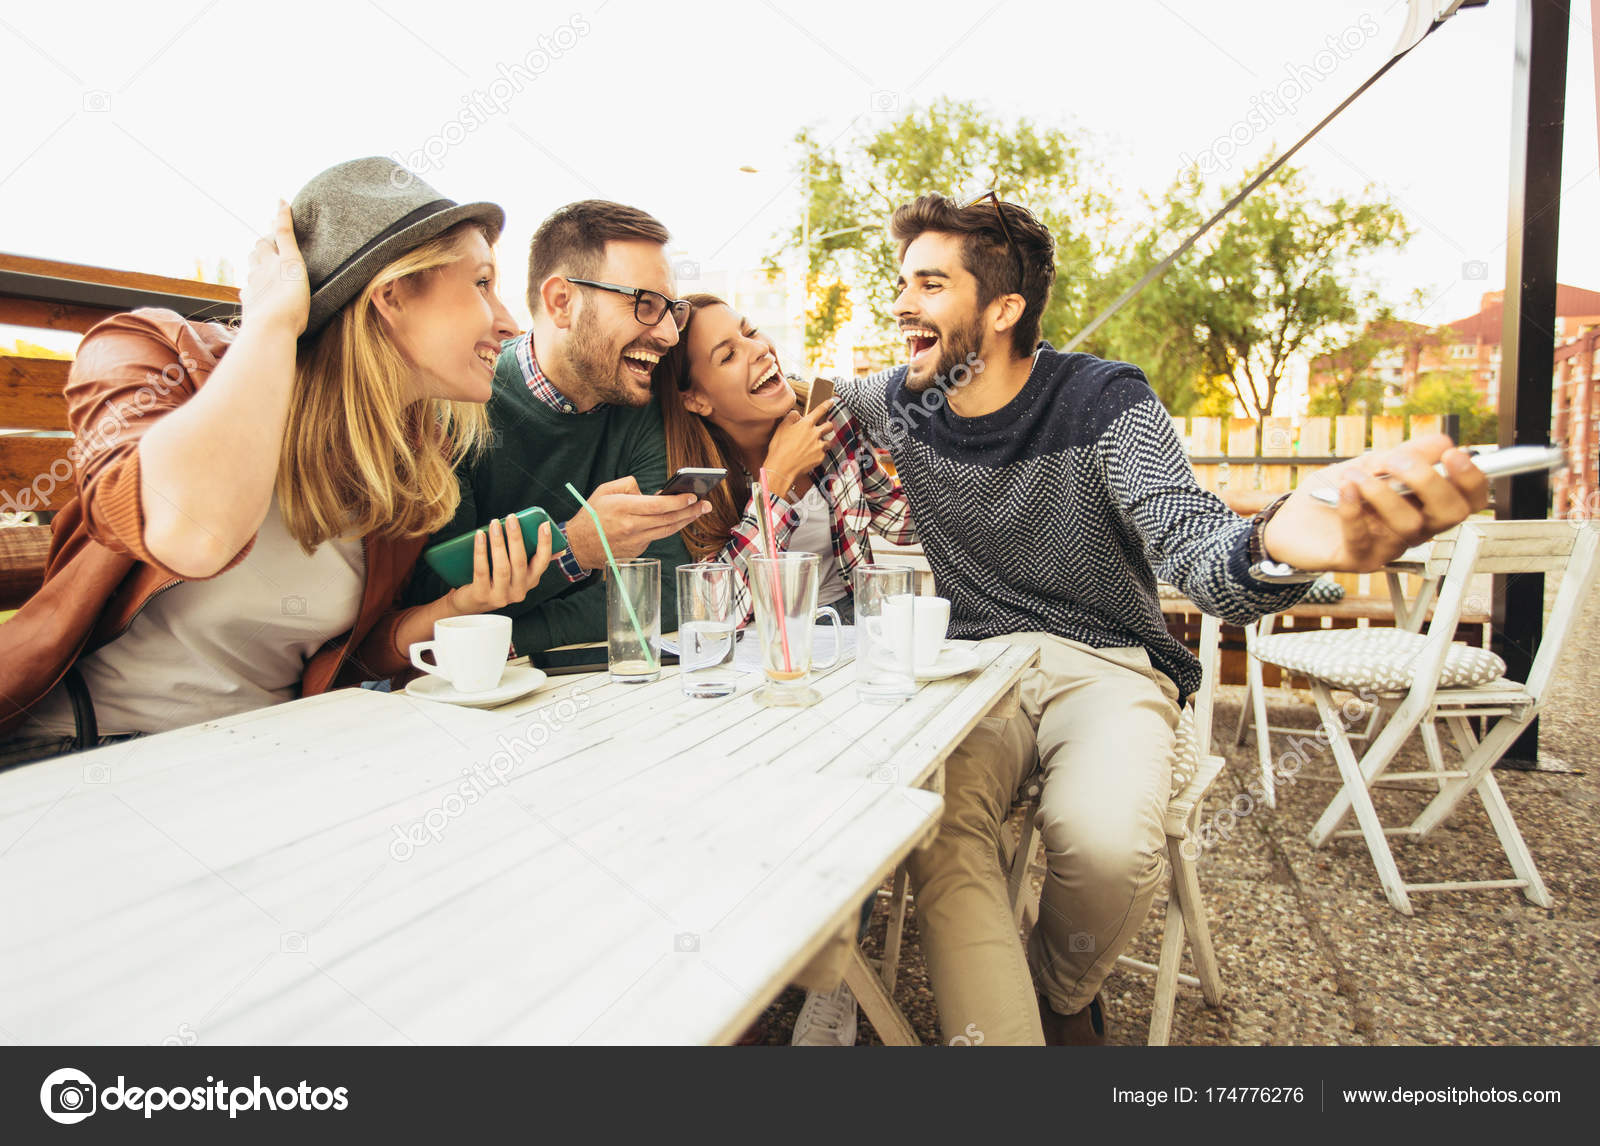 Group Happy Young People Cafe Talking Laughing Together Stock Photo C Adriaticphoto 174776276